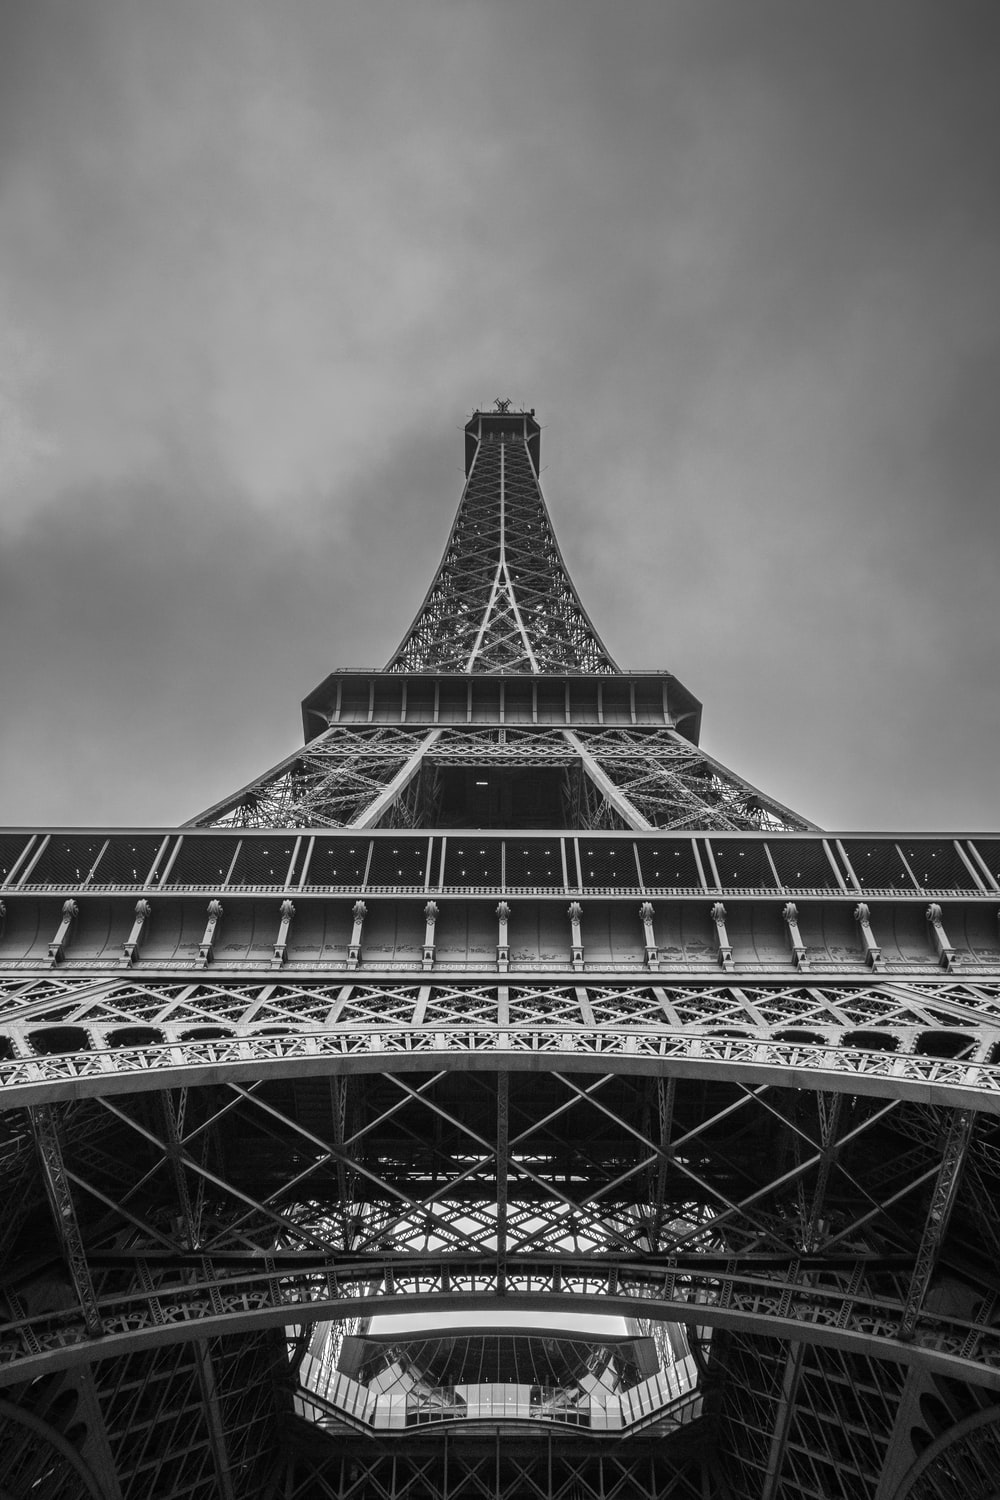 low angle photo of the Eiffel tower